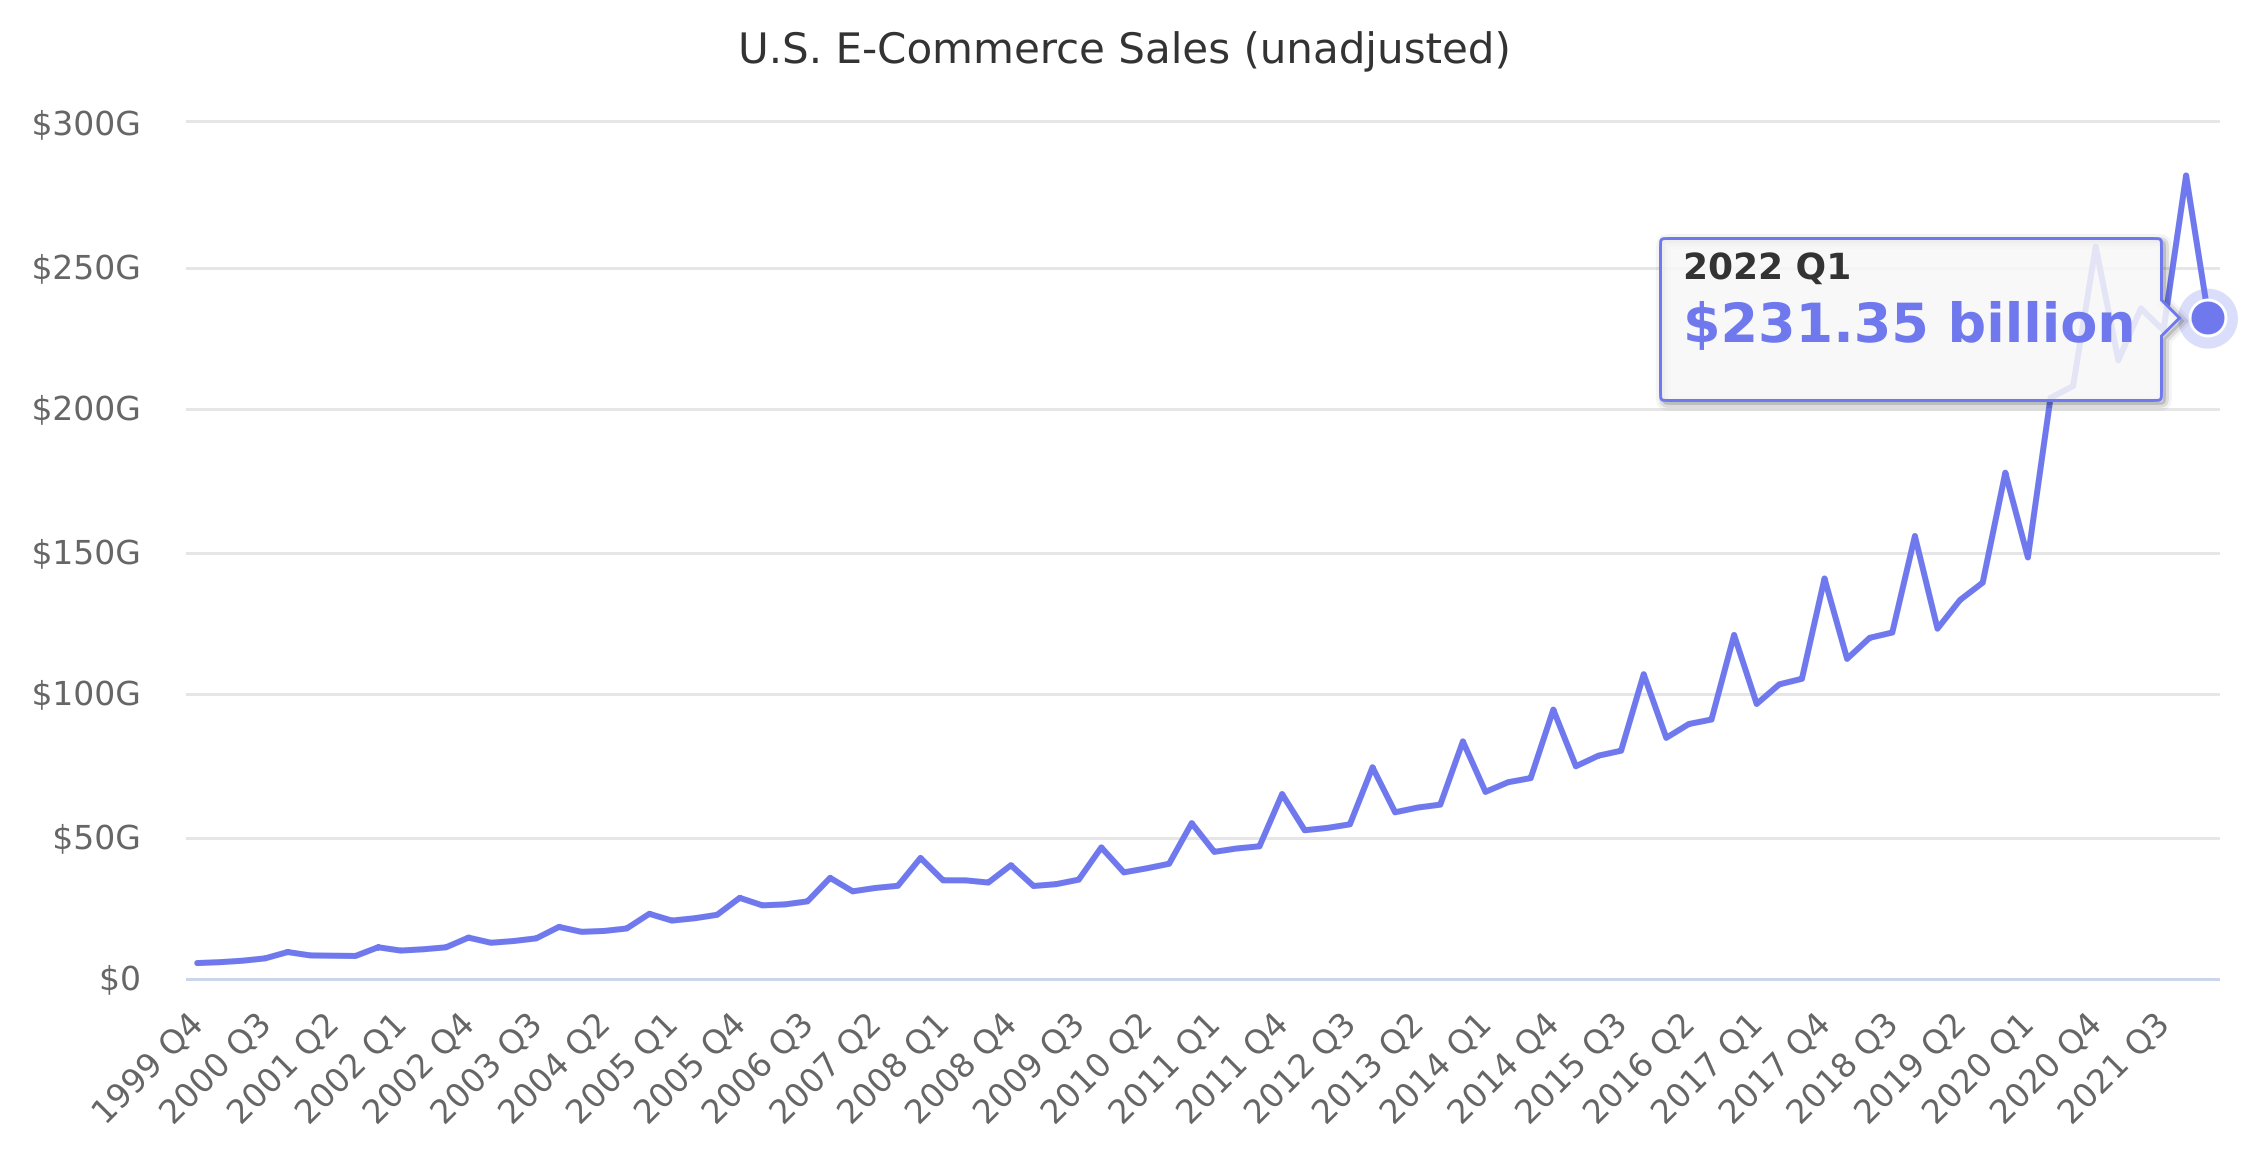 U.S. E-Commerce Sales (unadjusted) 1999-2018